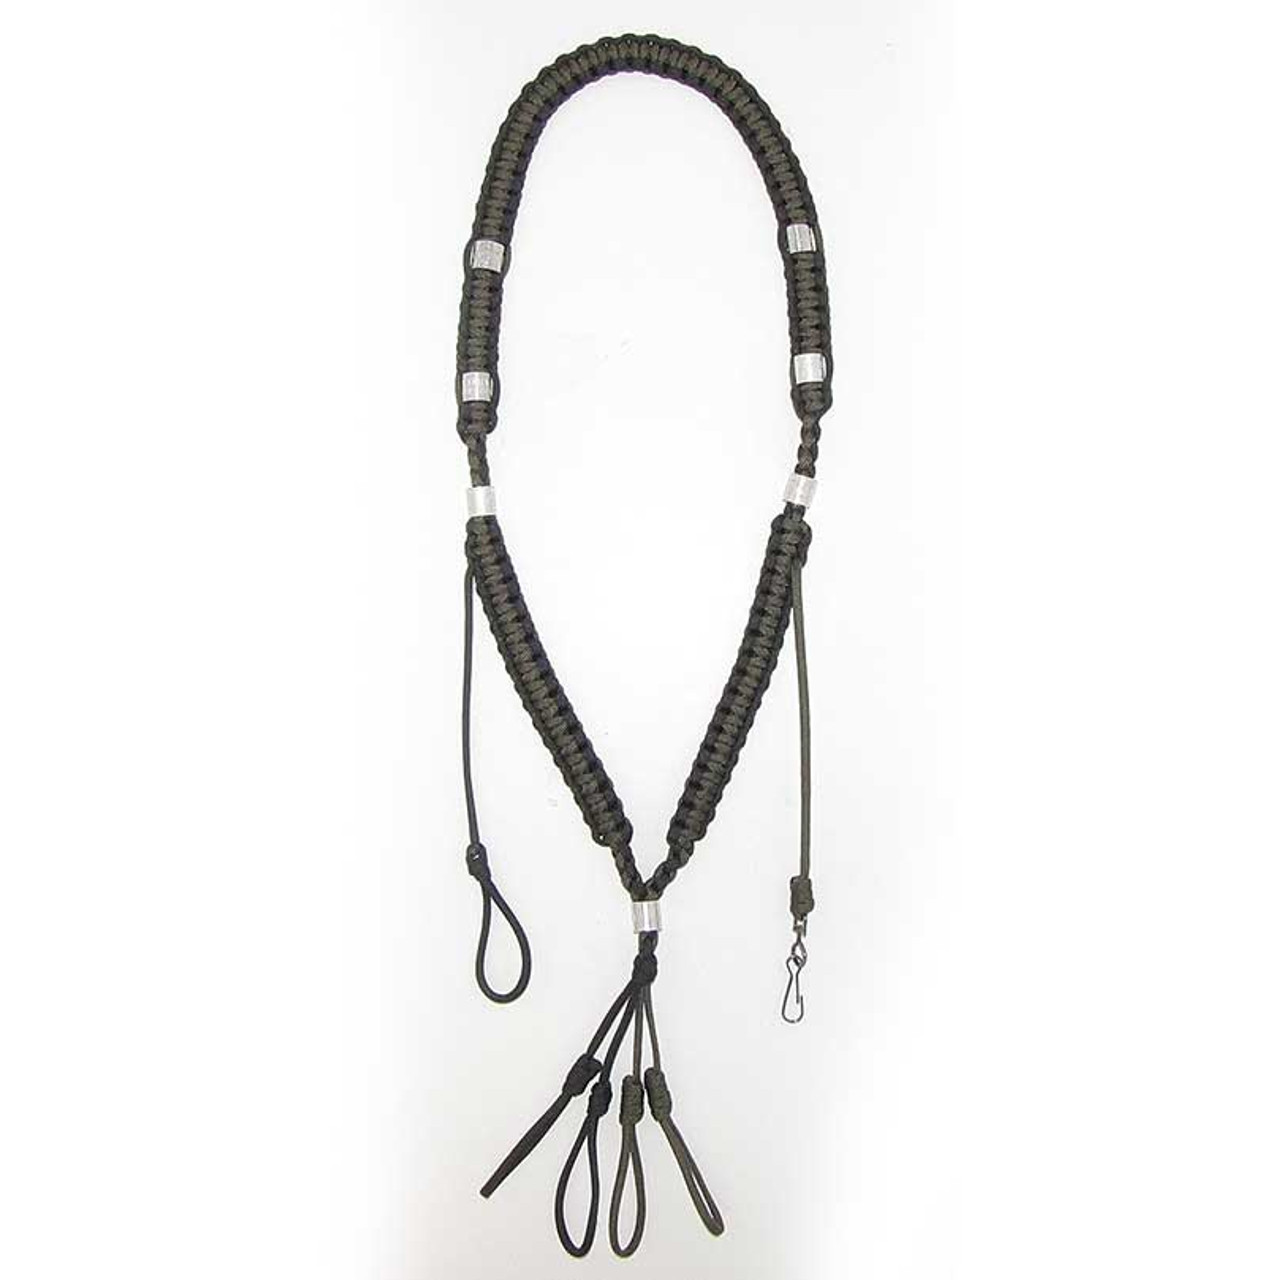 Heavy Hauler Cobra Flat Braid Lanyard w/Whistle - Model D3